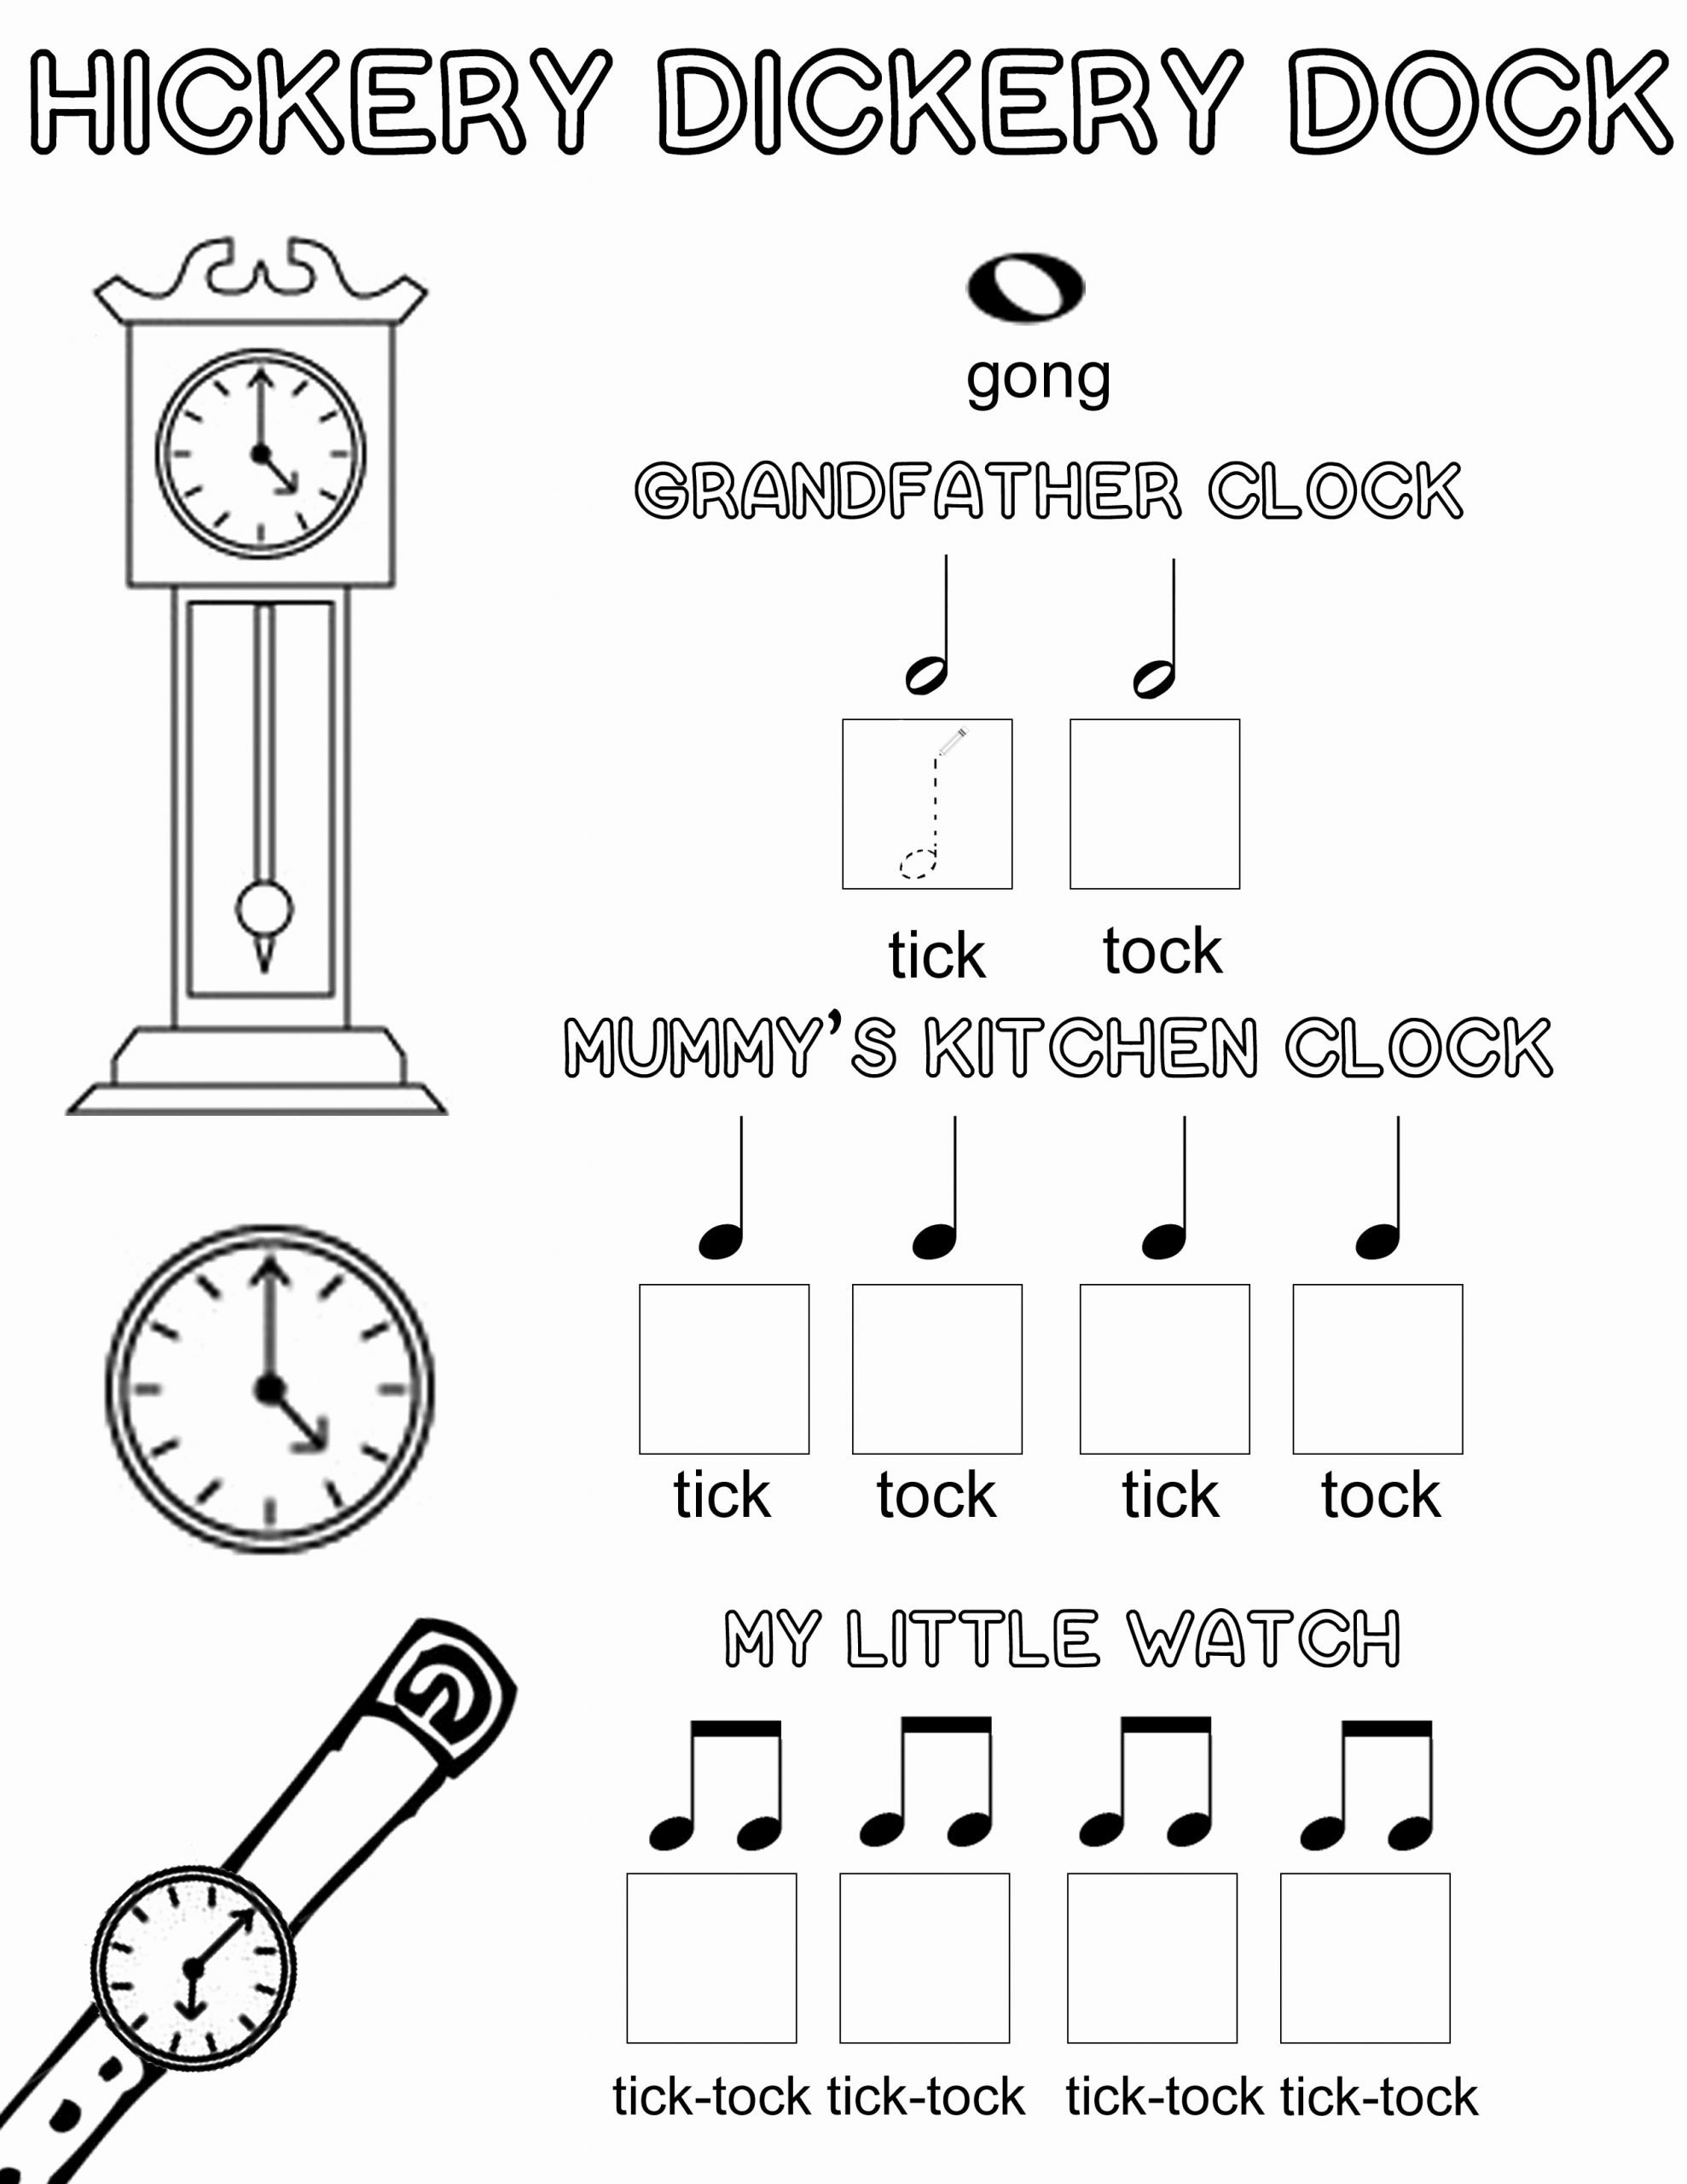 Piano Worksheets for Preschoolers Awesome Free Music theory Printable & Colouring Activity